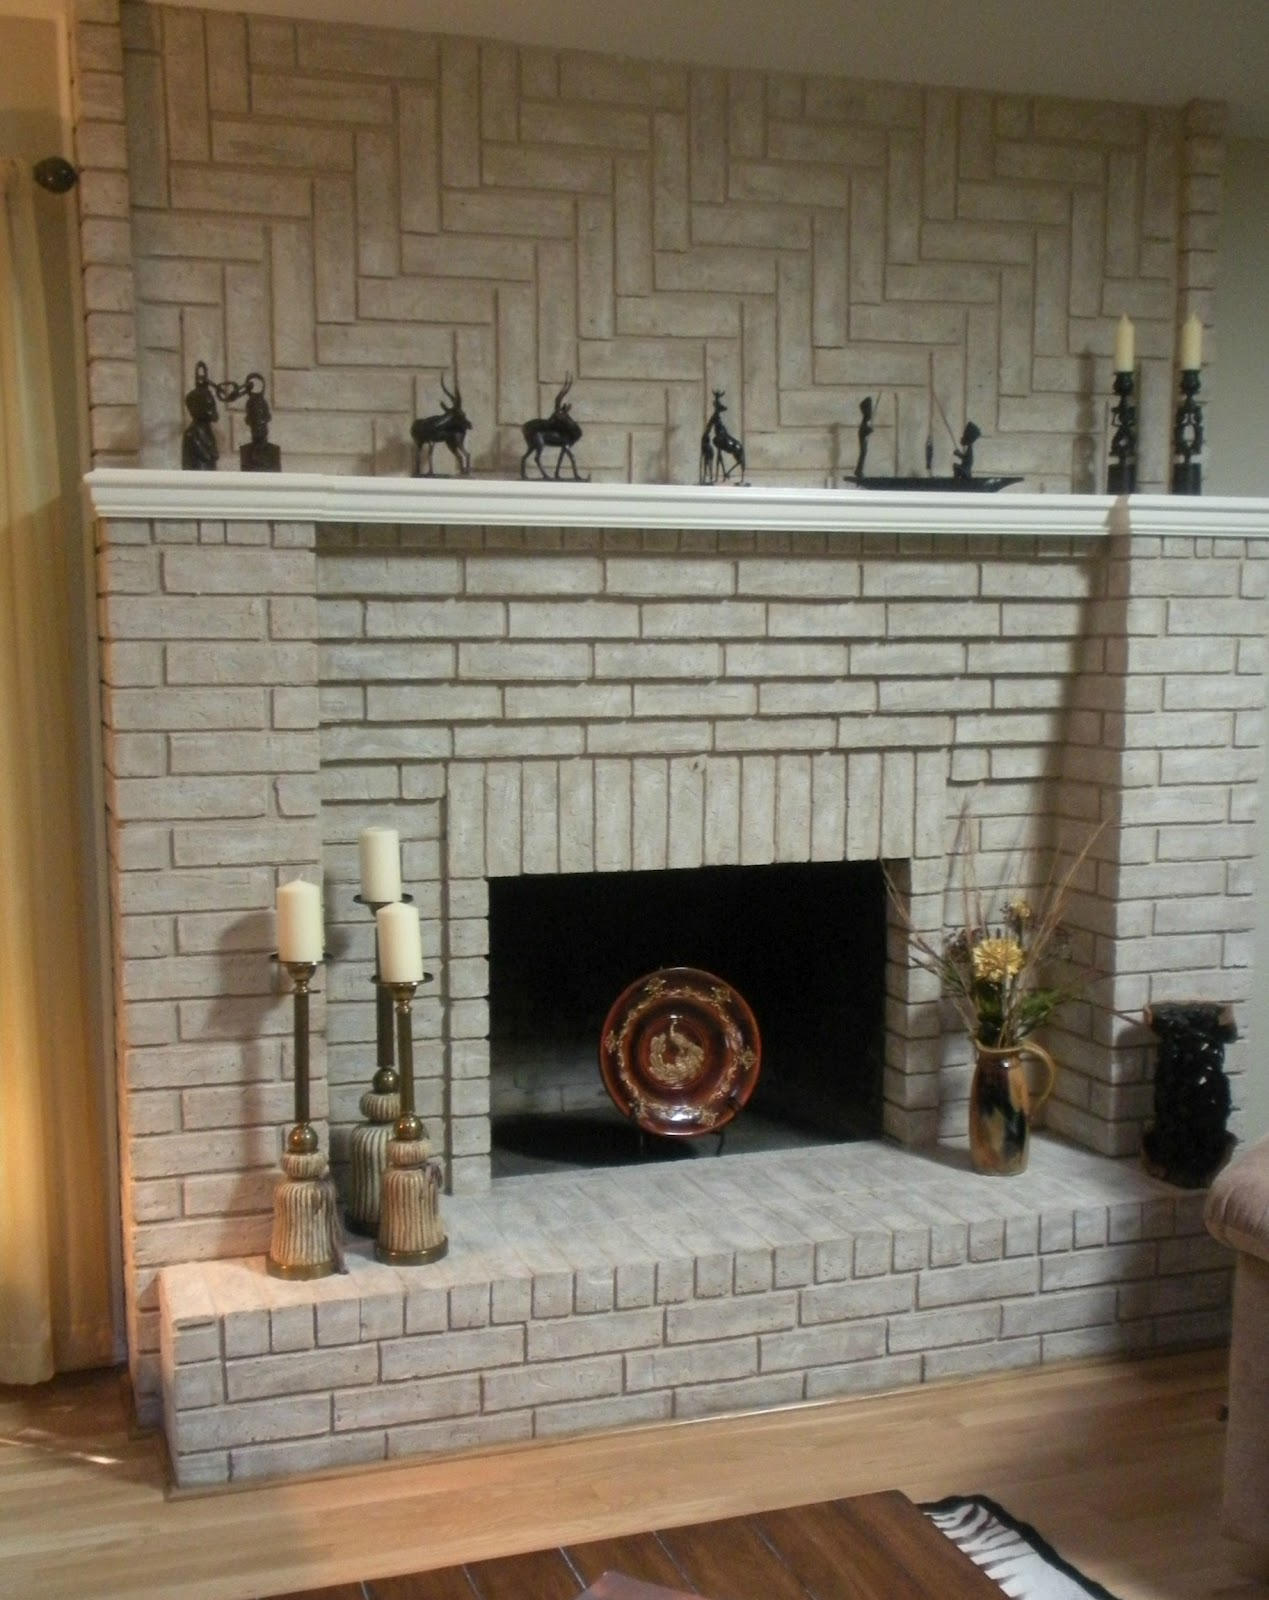 Fireplace decorating february 2012 Brick fireplace wall decorating ideas